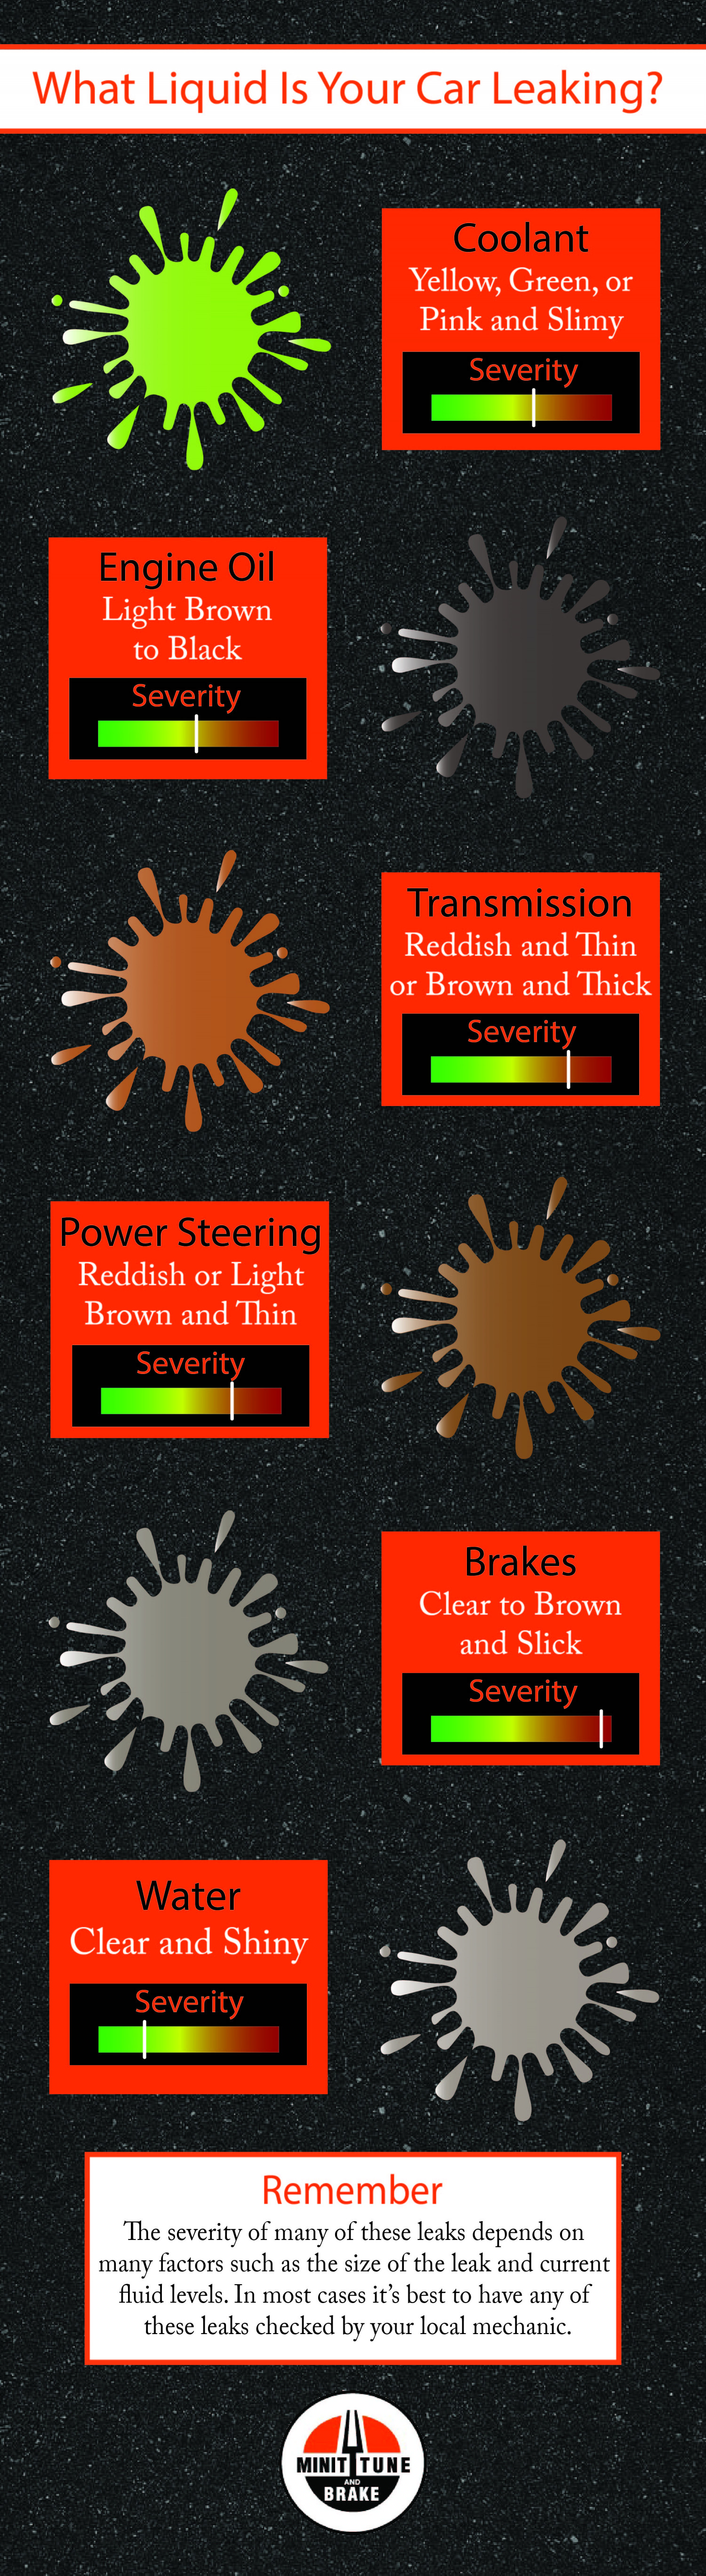 What Liquid Is Your Car Leaking? Infographic